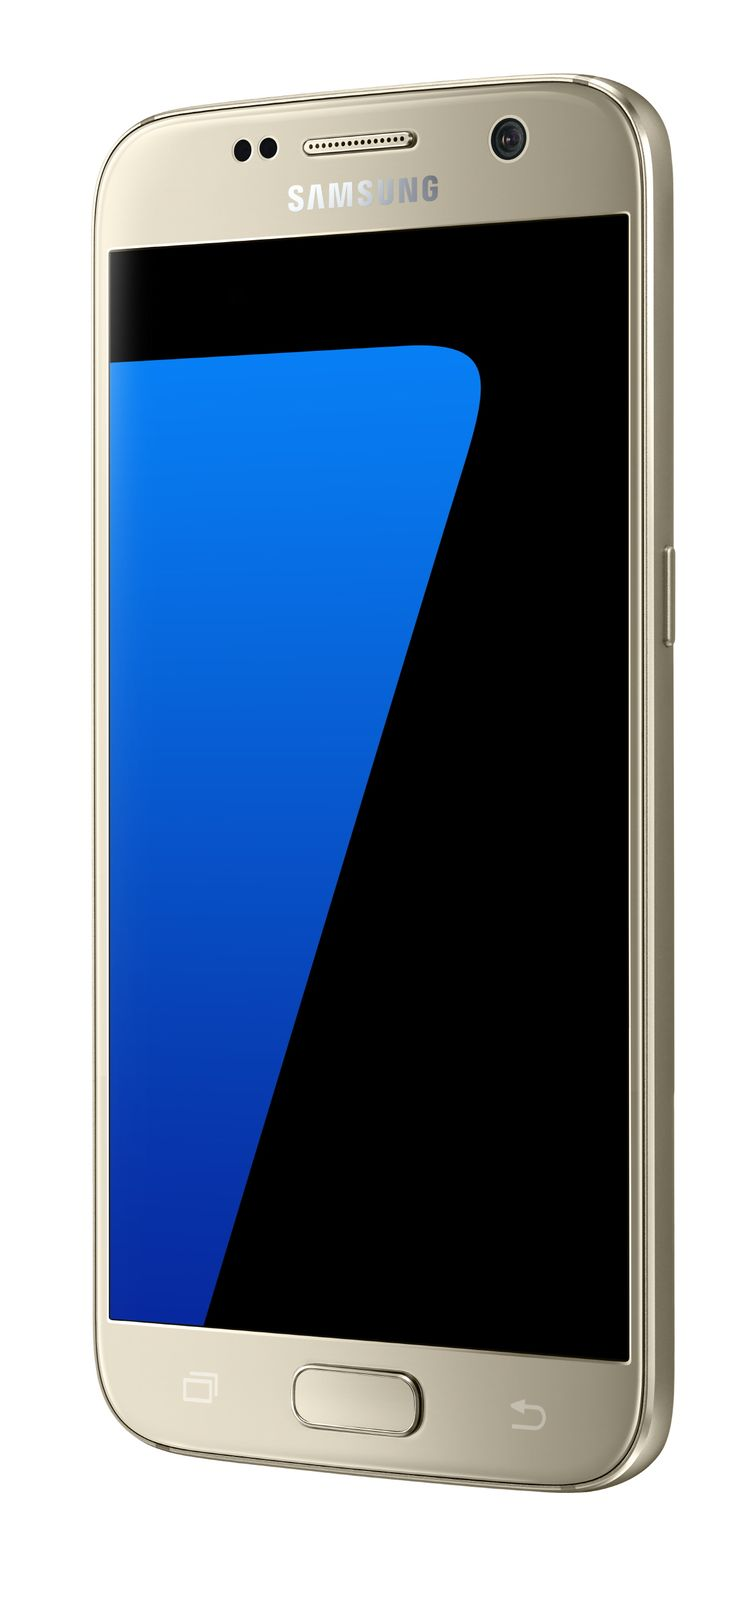 Samsung galaxy s7 edge olympic edition will unveil on july 7 mobile - Samsung Announce The Evolutionary Galaxy I Got Mine Today